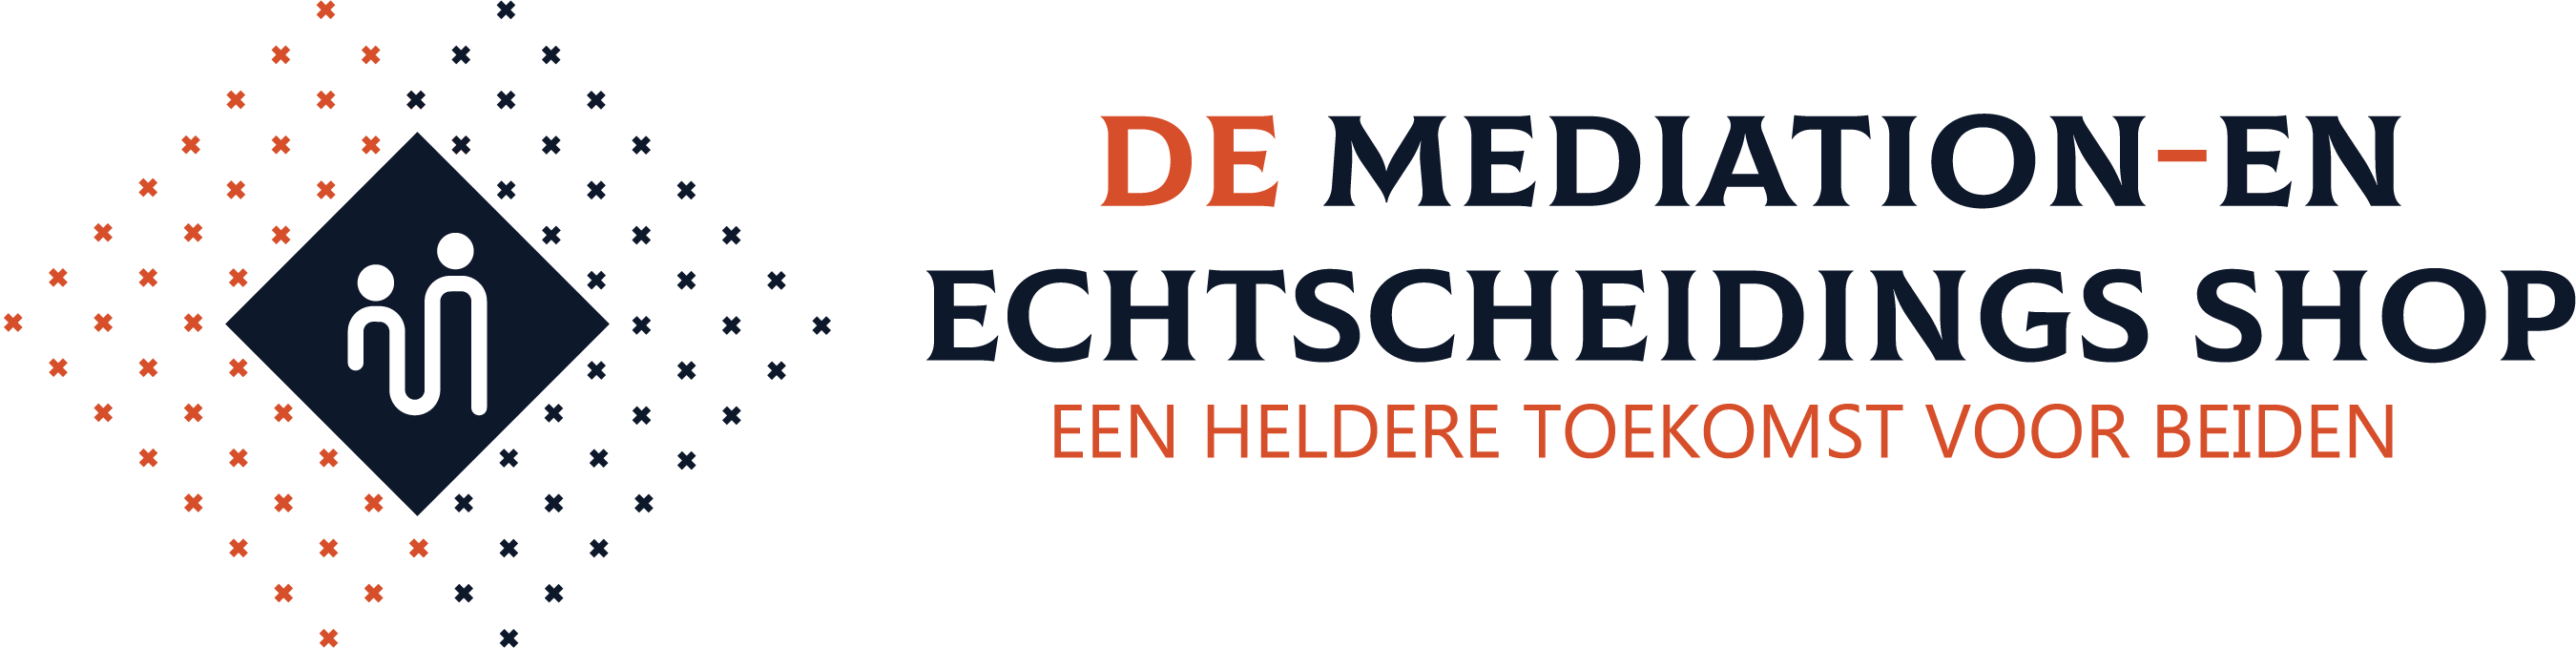 De mediation shop